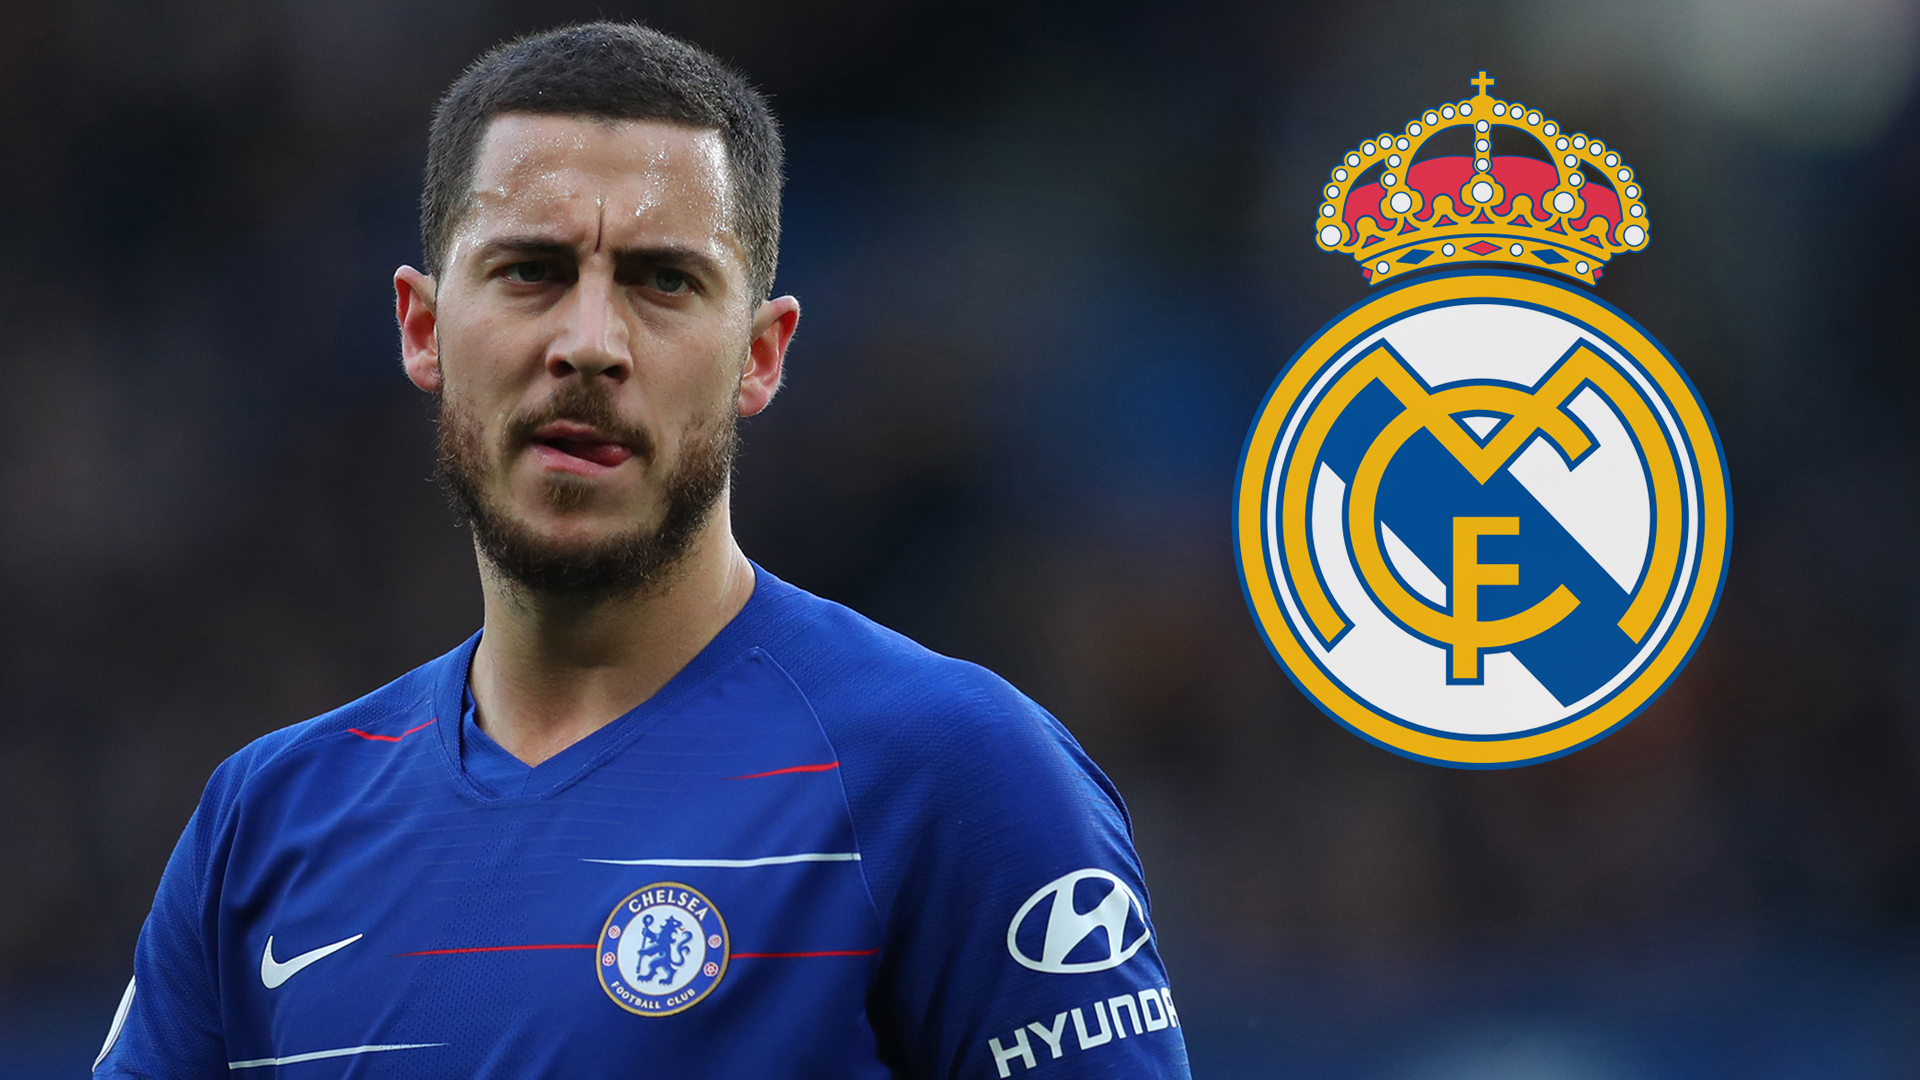 Transfer news and rumours LIVE: Real Madrid want Hazard